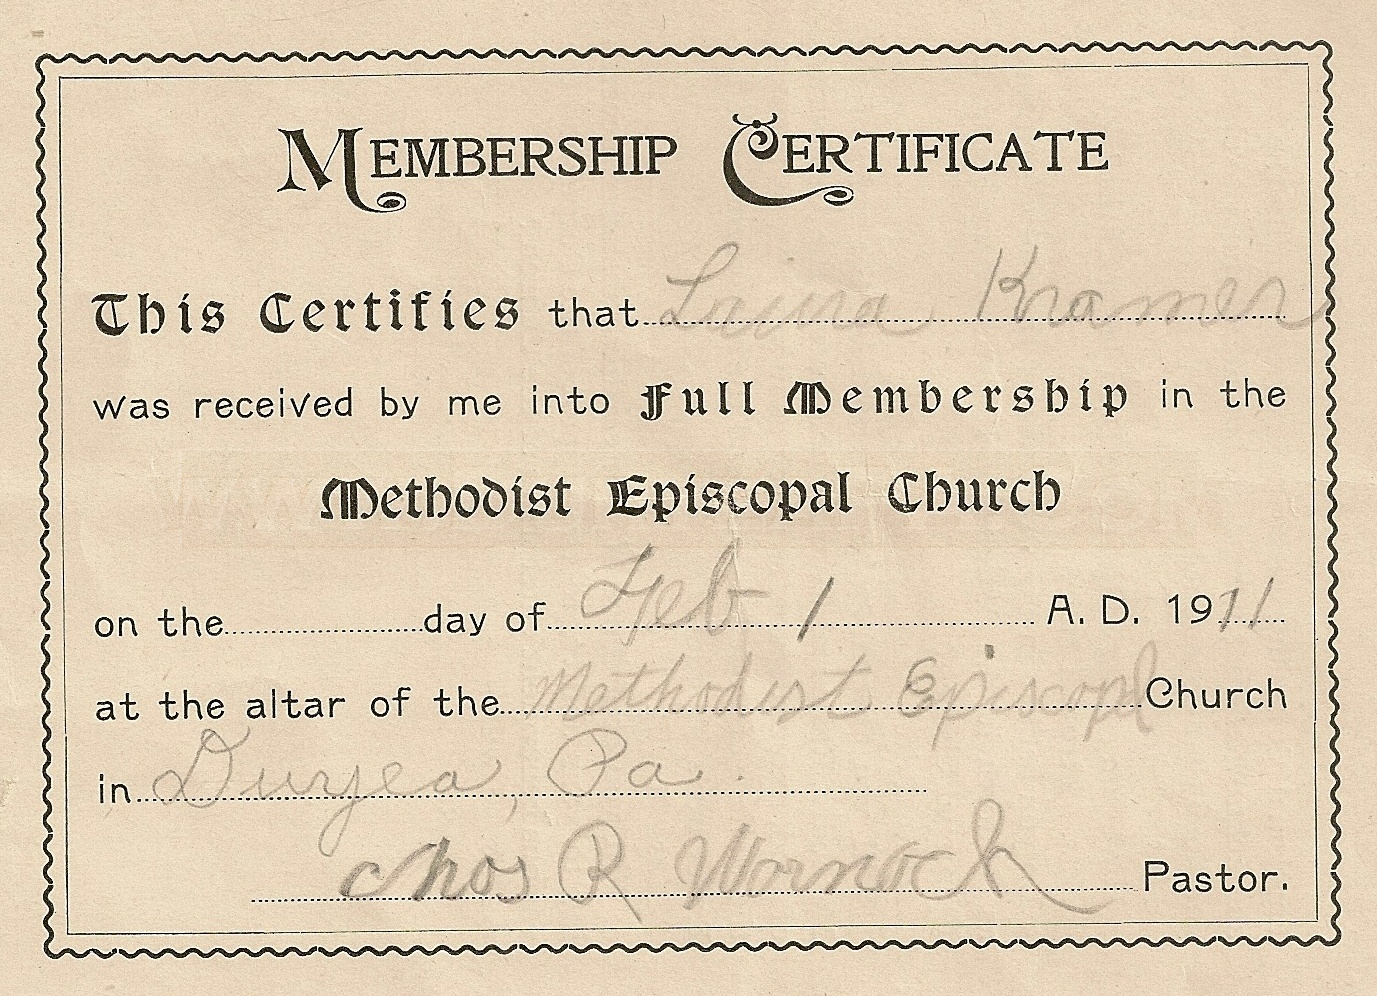 Church membership certificates targergolden dragon church membership certificates xflitez Gallery